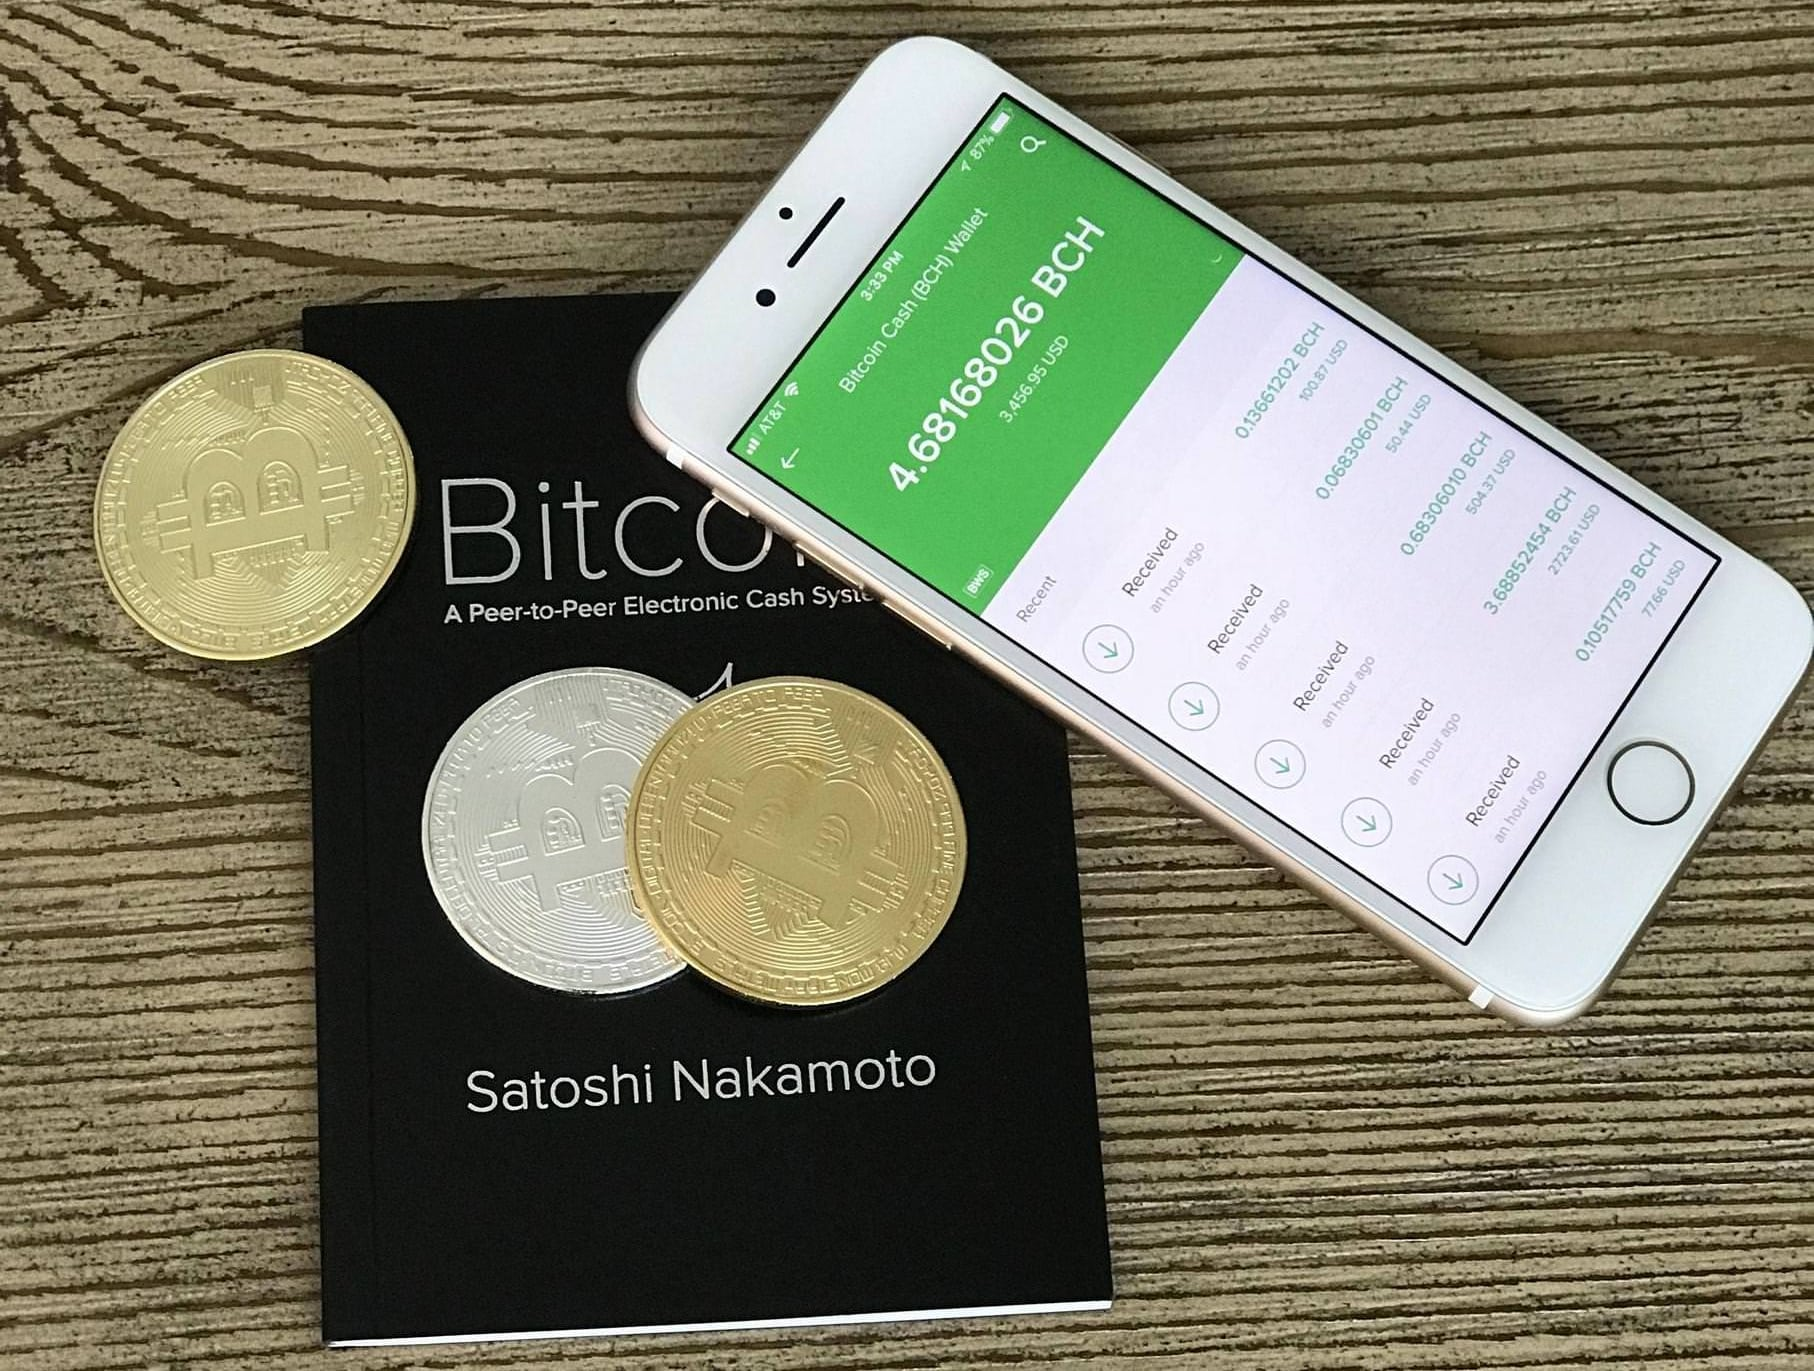 Bitcoin Cash coins and smartphone with an application opened